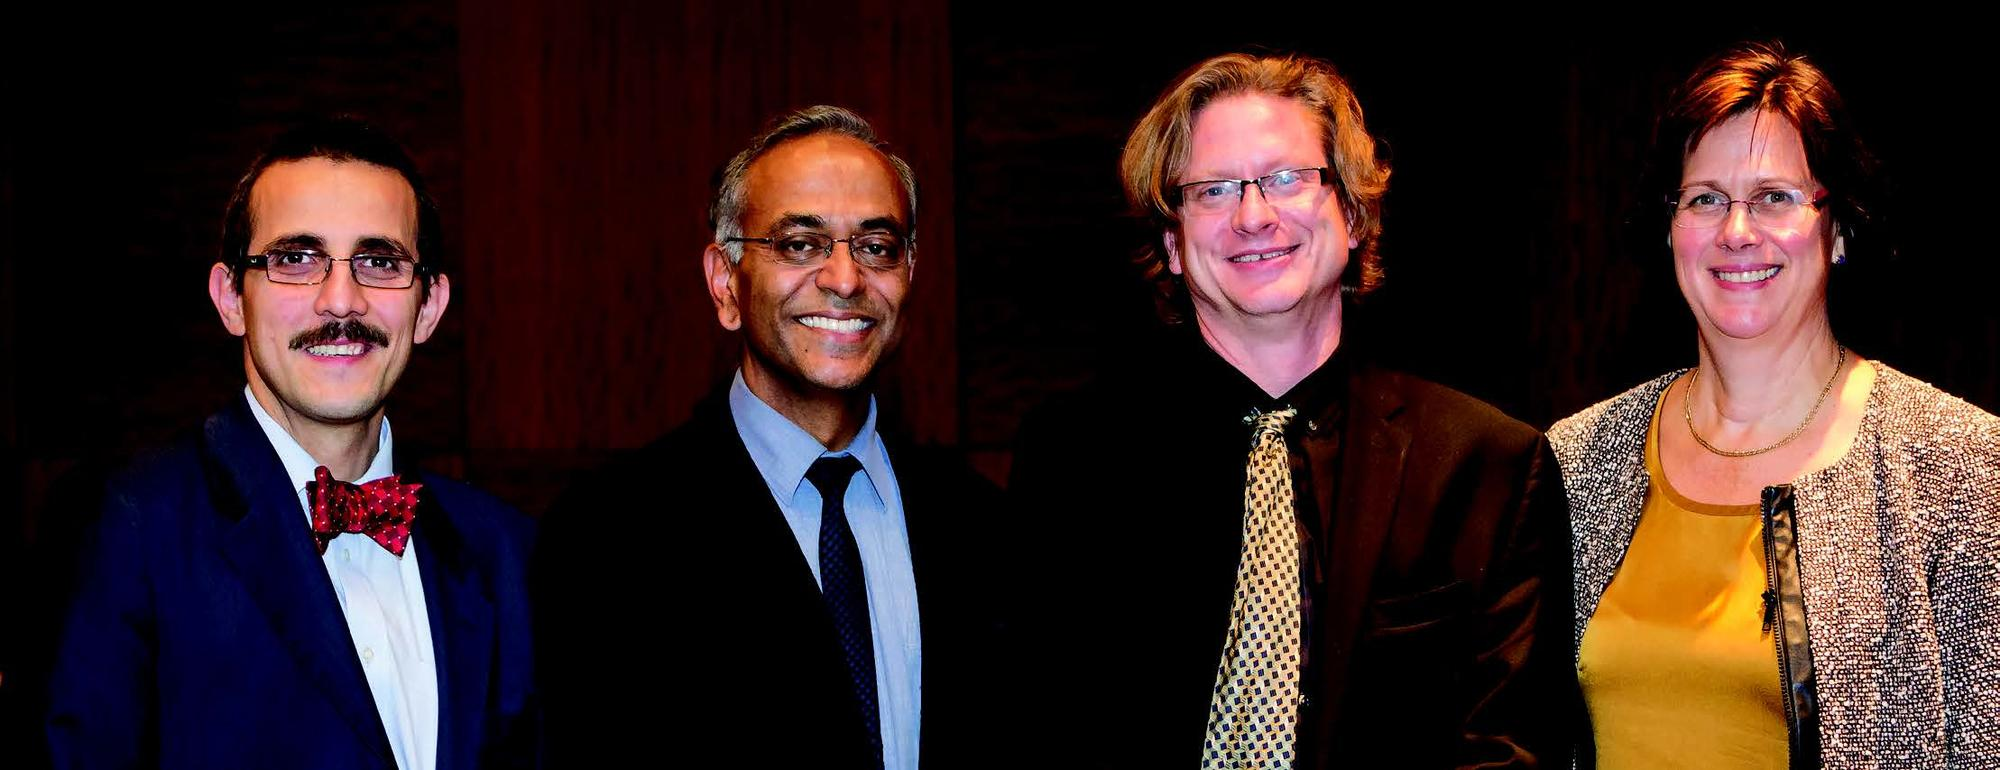 Demetrios Vavvas, MD, PhD, Pawan Sinha, PhD, Michael Young, PhD, and Joan W. Miller, MD, FARVO